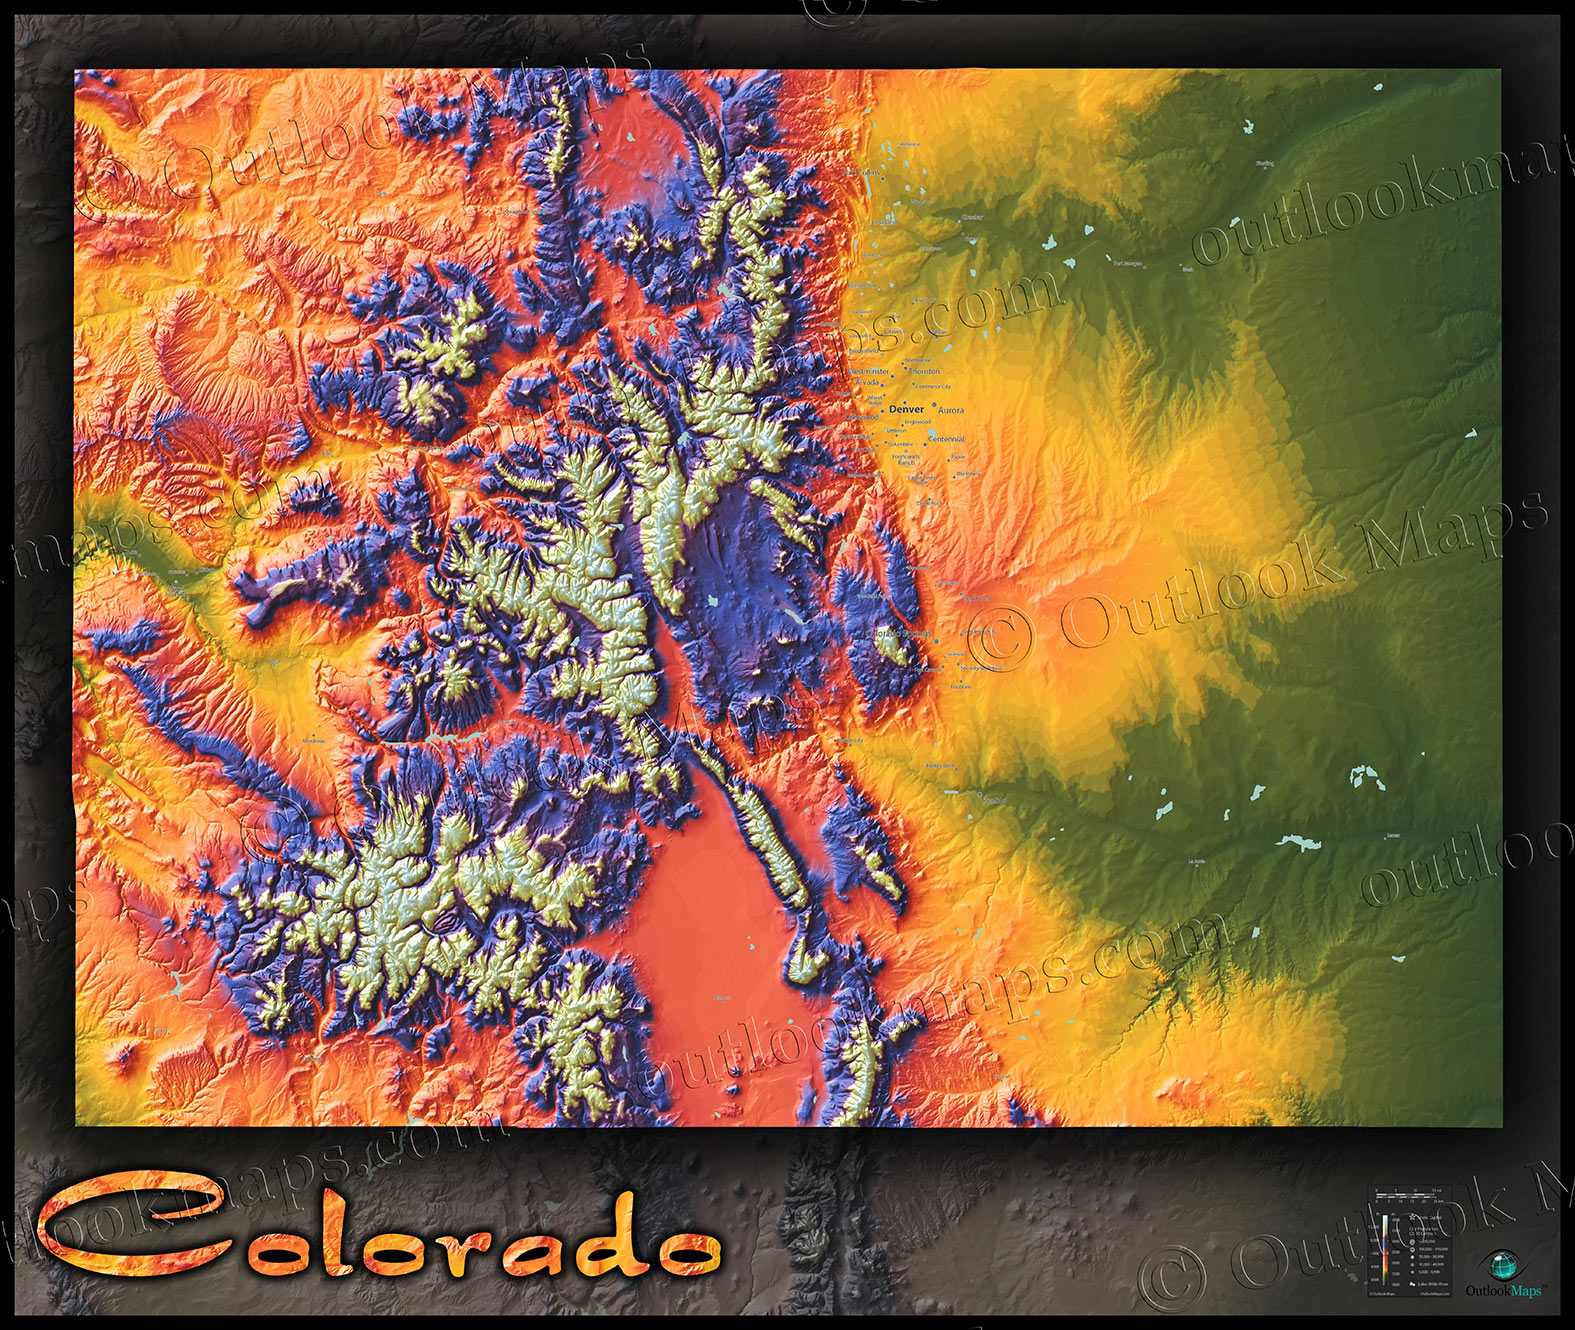 Colorado Elevation: Colorful 3D Topography Of Rocky Mountains